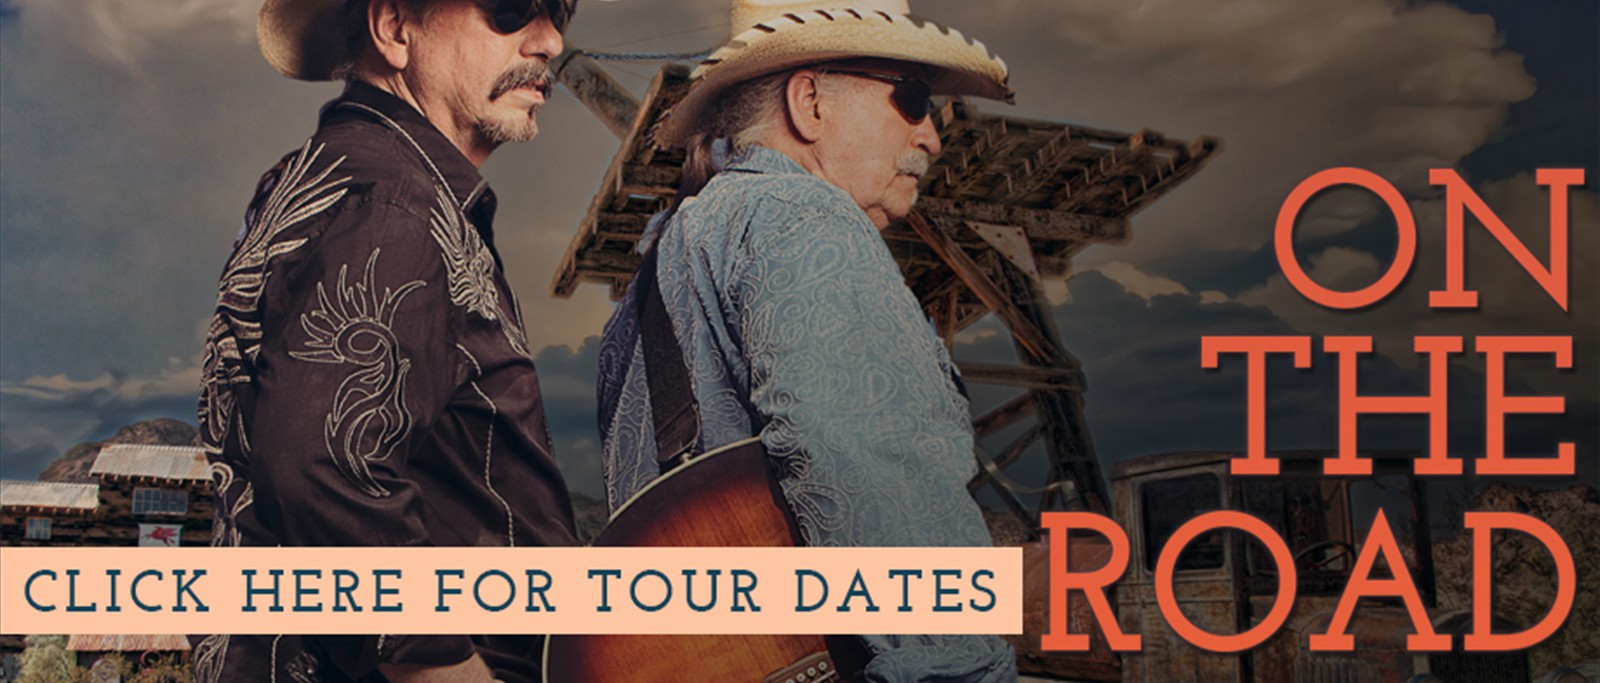 Bellamy Brothers on Tour